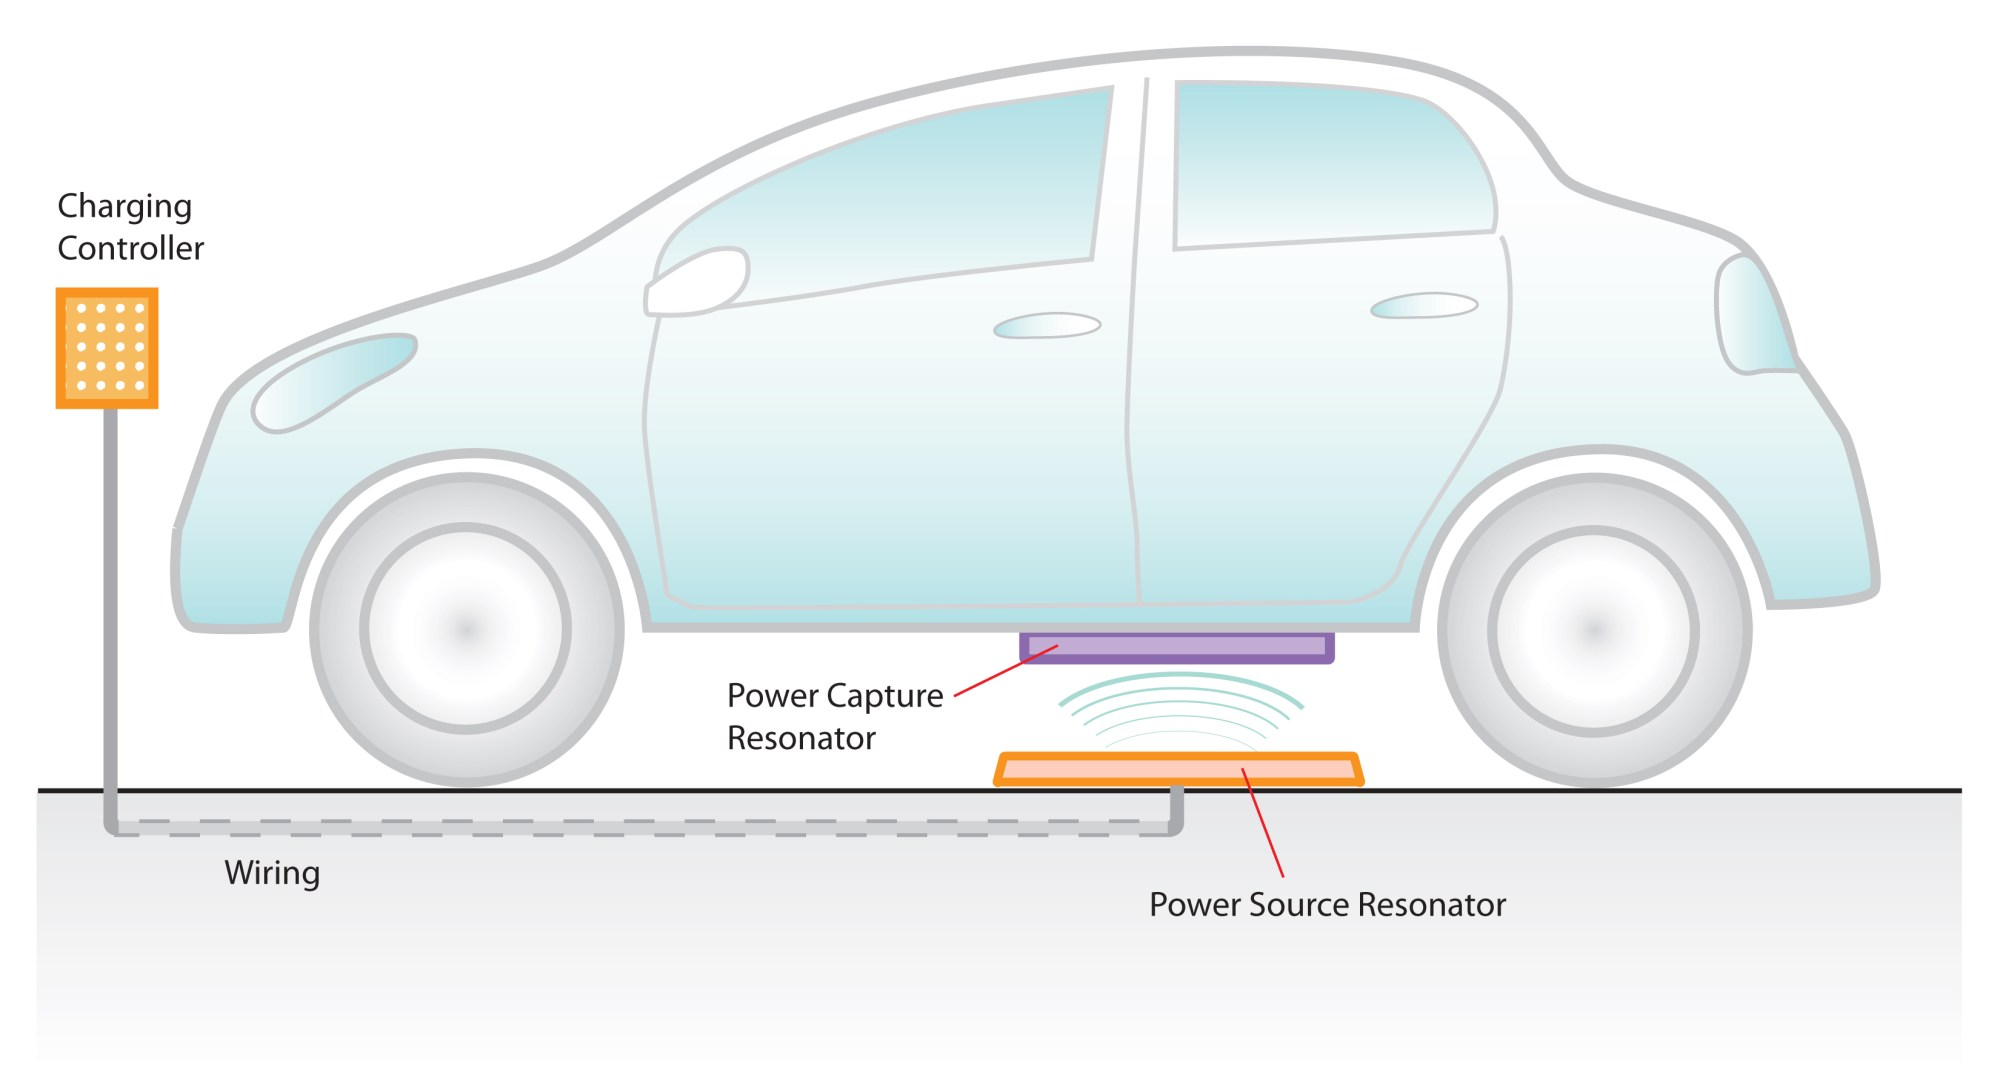 hight resolution of wireless car diagram wiring diagram nowwireless charging system for electrical vehicles eltis cambium networks install diagram